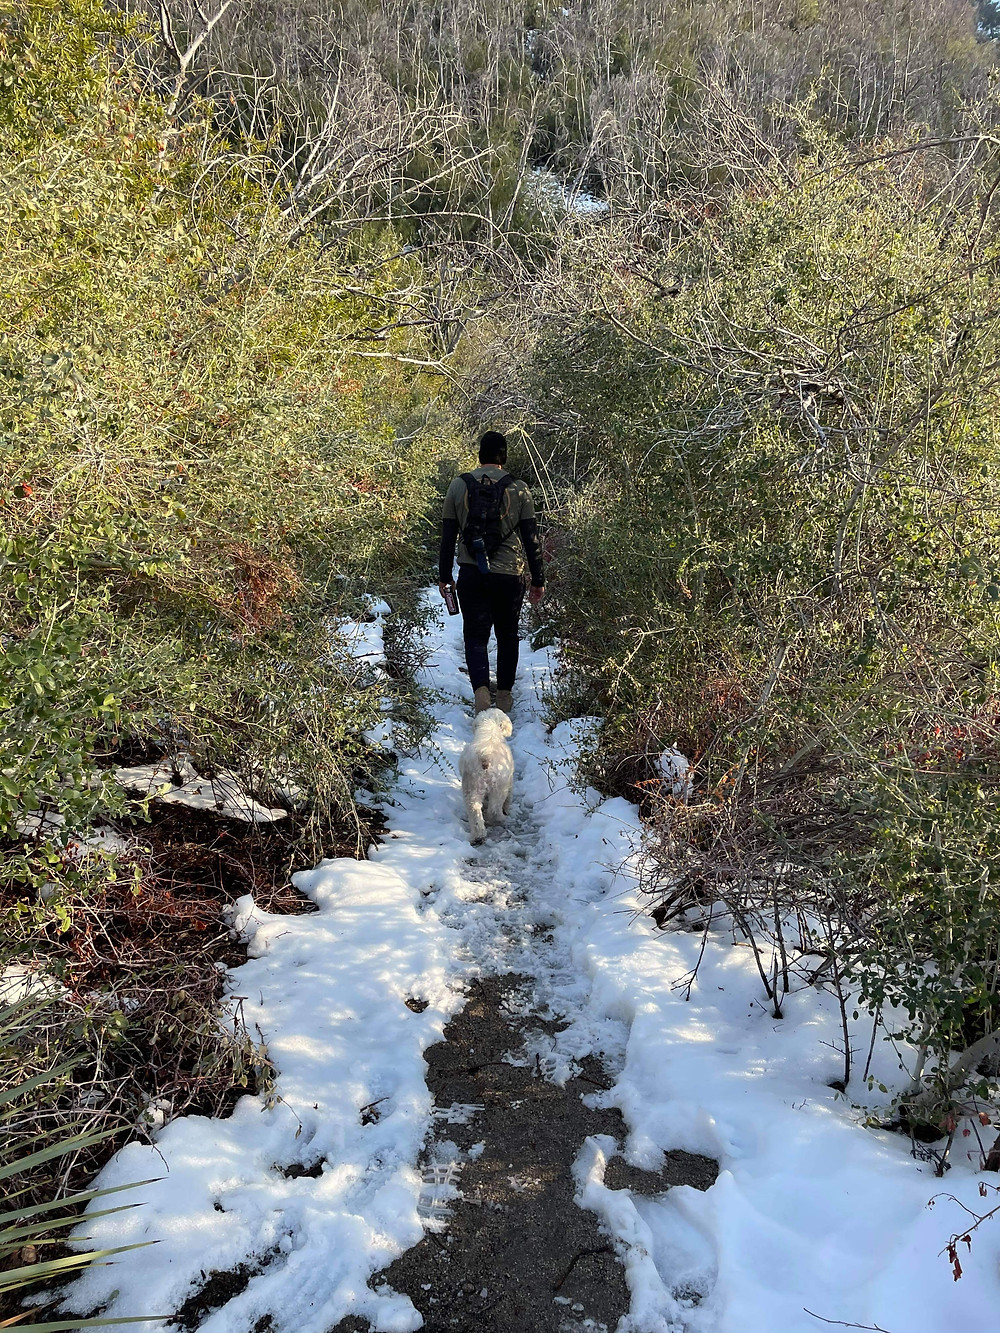 A fluffy white dog named Yogi follows his best friend down a shallow creek that serves as a hiking trail through Angeles National Forest, just outside Los Angeles, California